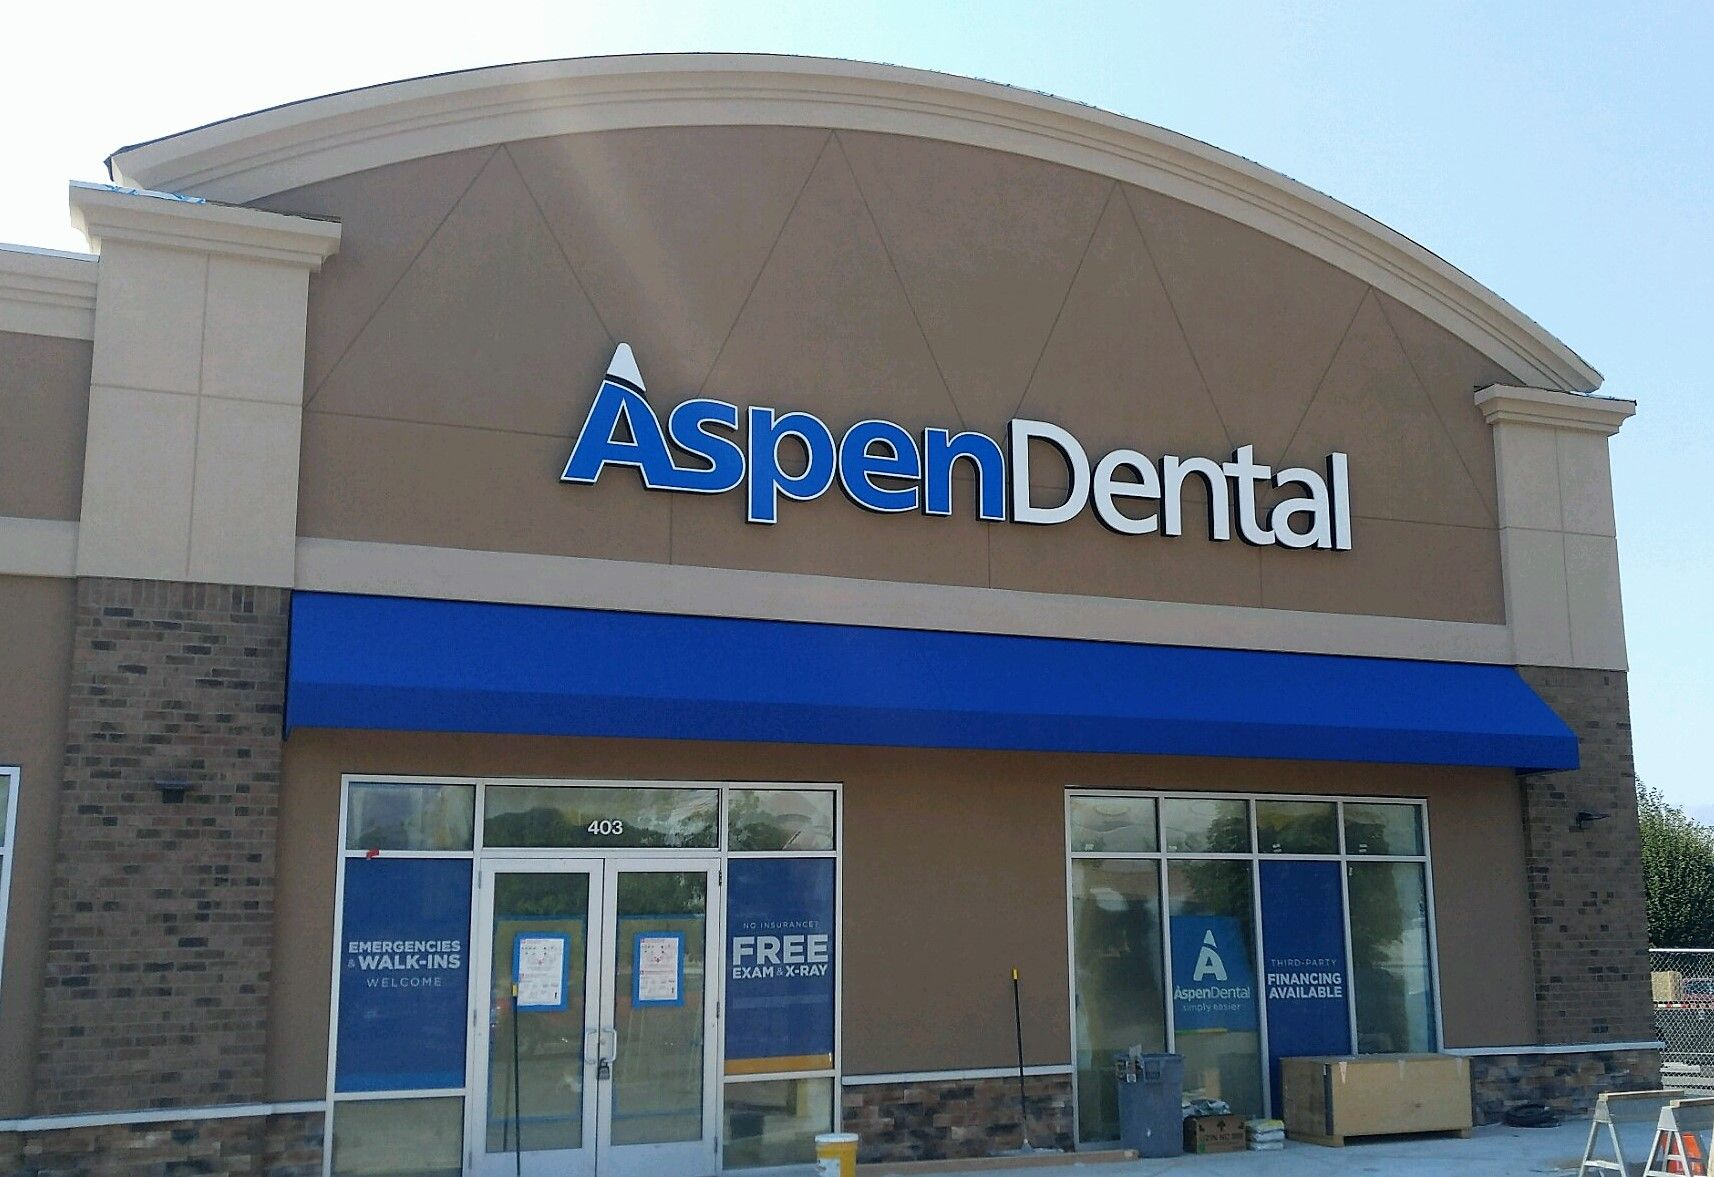 Aspen Dental In Wenatchee Wa Is About Ready To Open We Just Finished Up Some These Amazing Awnings Teeth H Awning Residential Awnings Aspen Dental